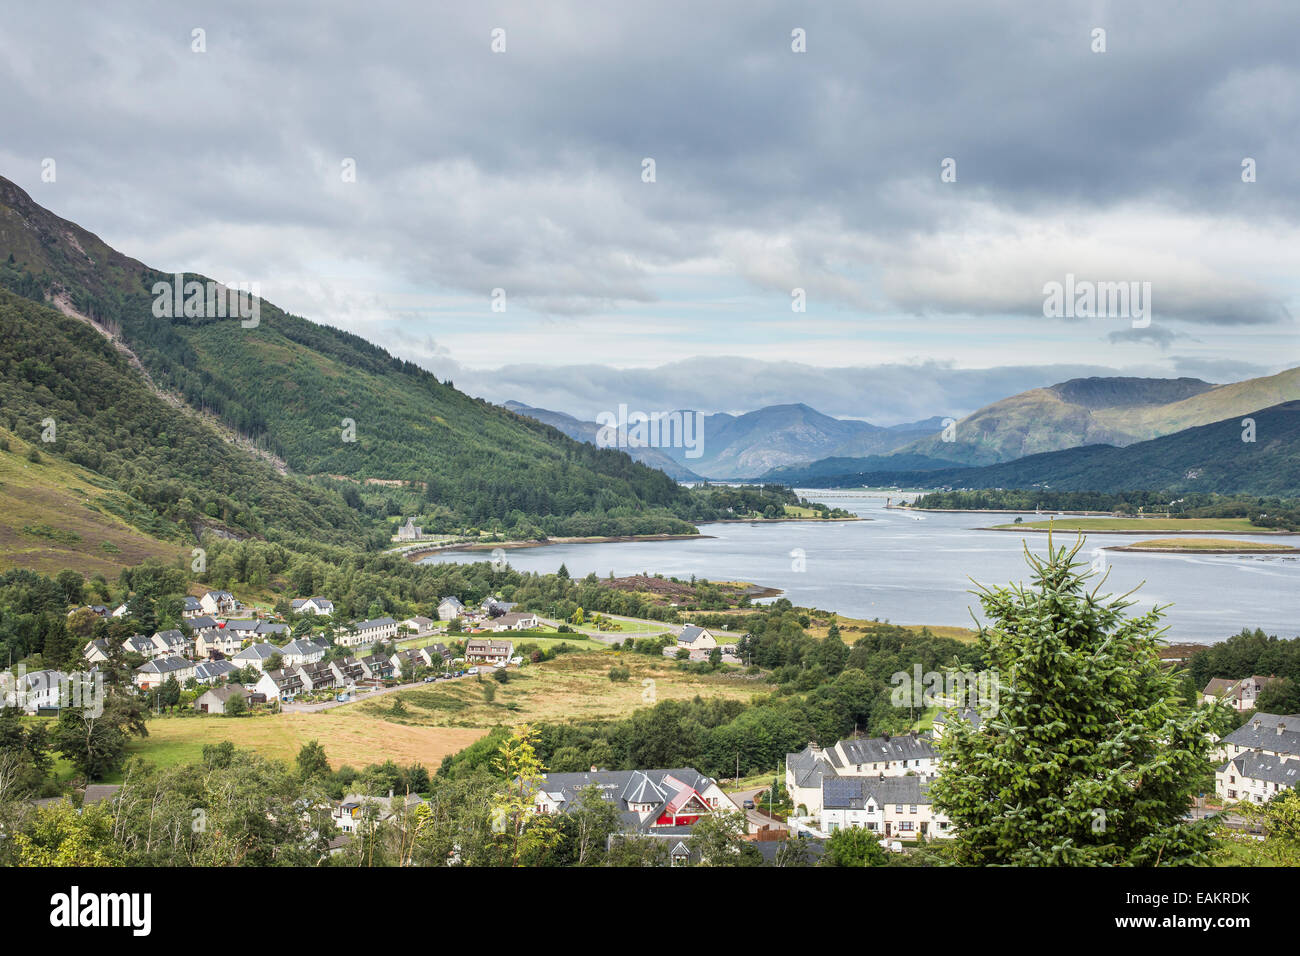 View over Loch Leven & Ballachulish in Lochaber in Scotland. - Stock Image